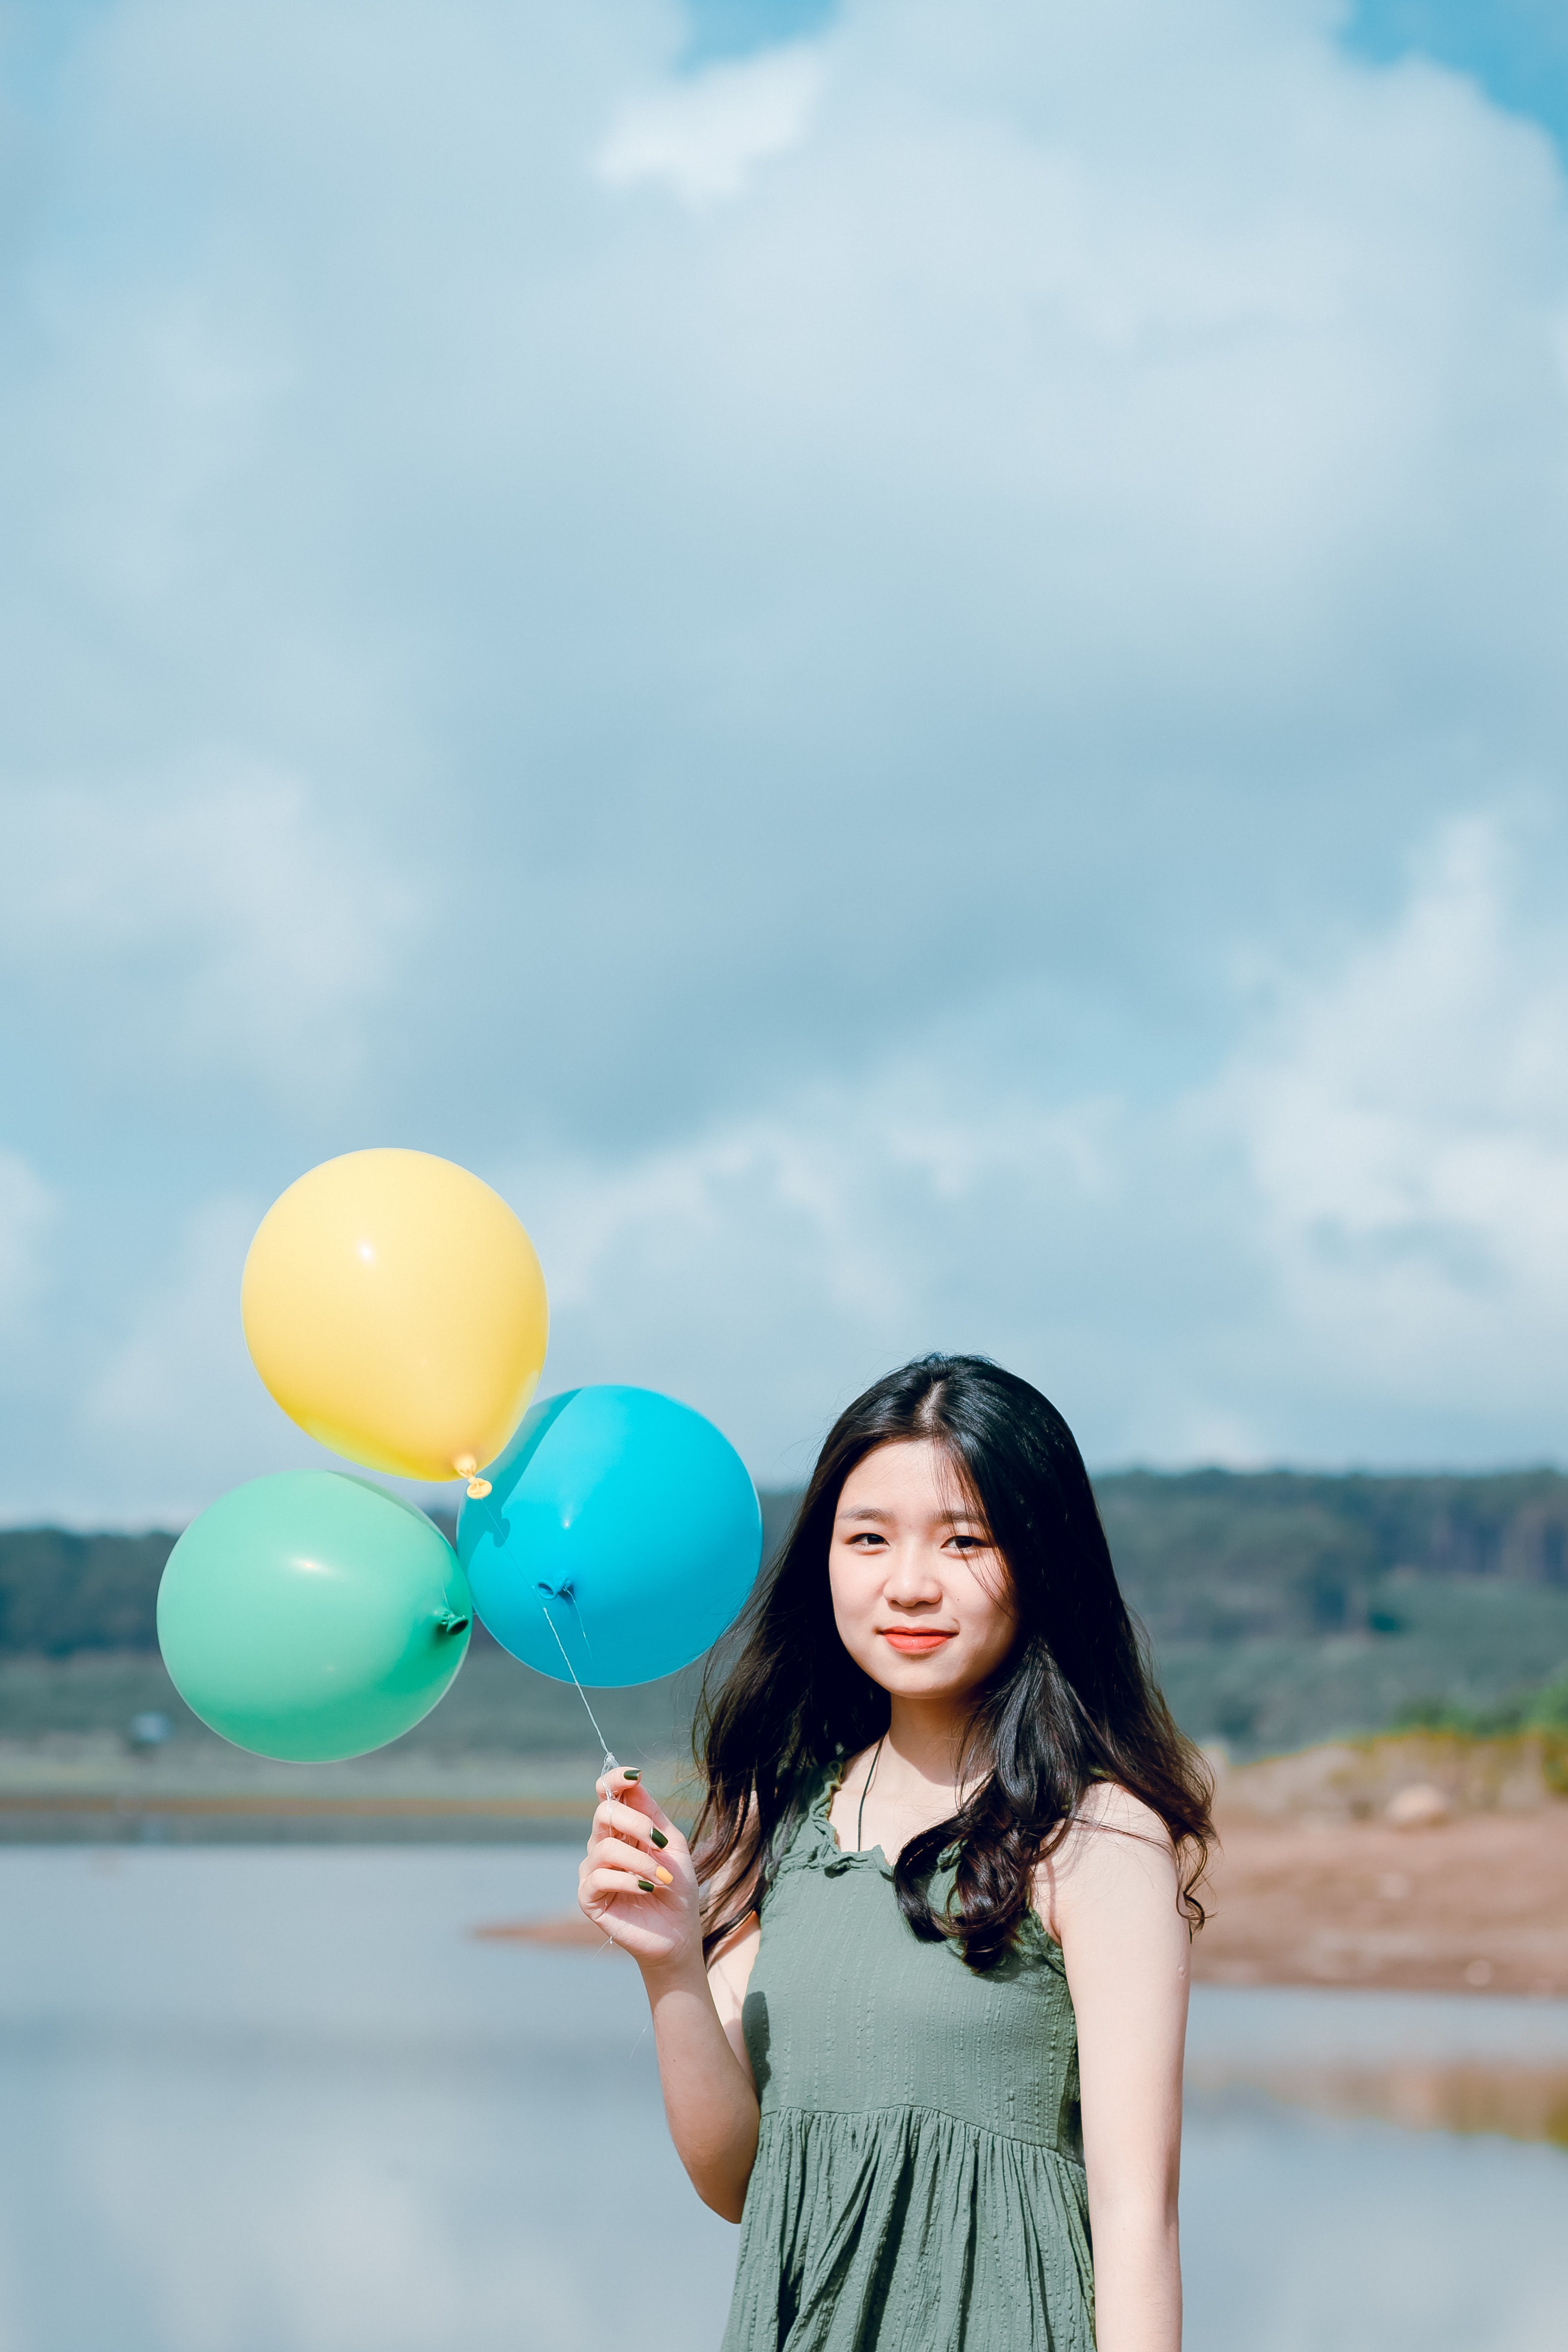 Woman In Green Sleeveless Top Holding Balloons